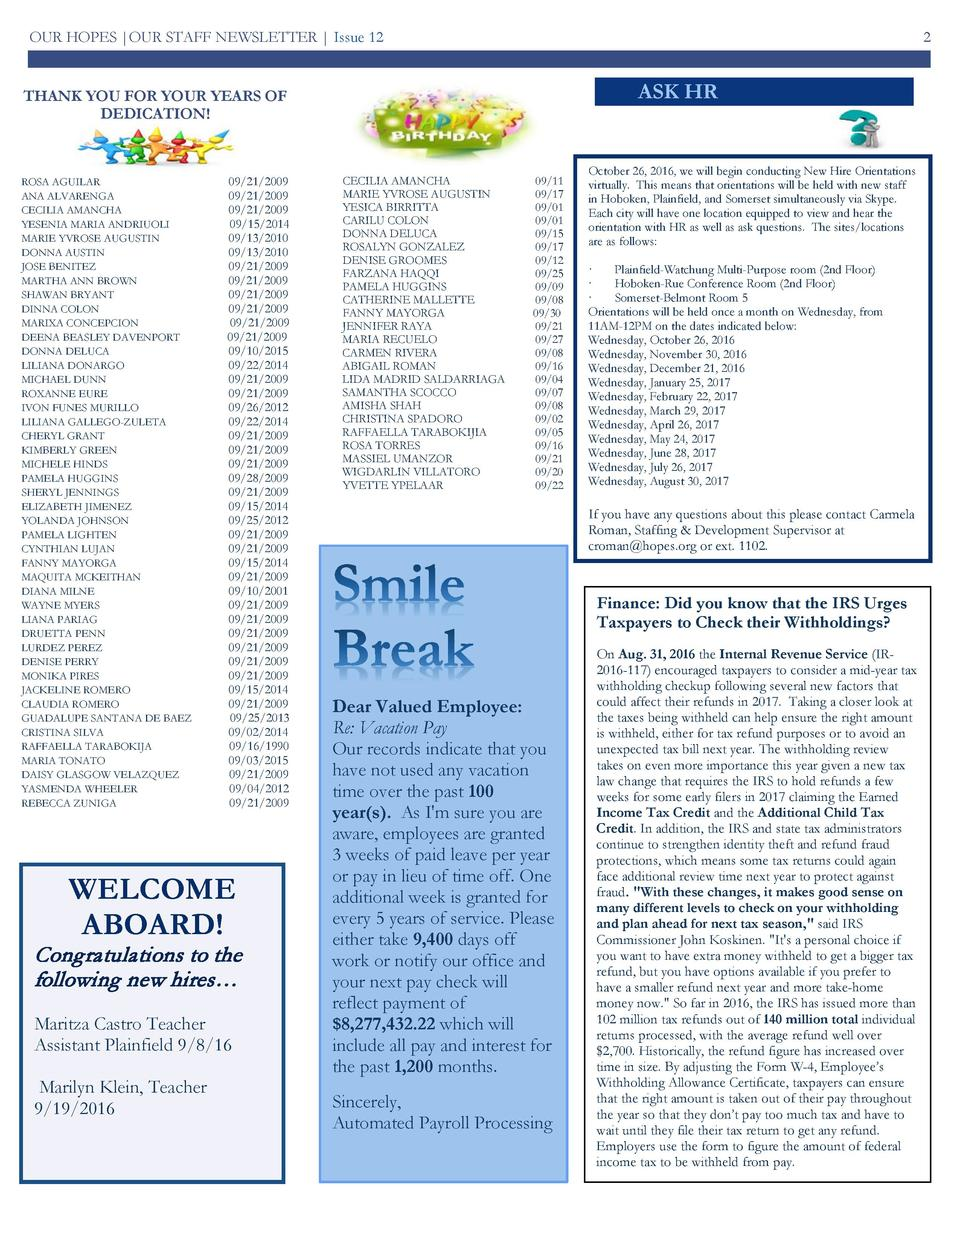 OUR HOPES  OUR STAFF NEWSLETTER   Issue 12  2  ASK HR  THANK YOU FOR YOUR YEARS OF DEDICATION   ROSA AGUILAR ANA ALVARENGA...